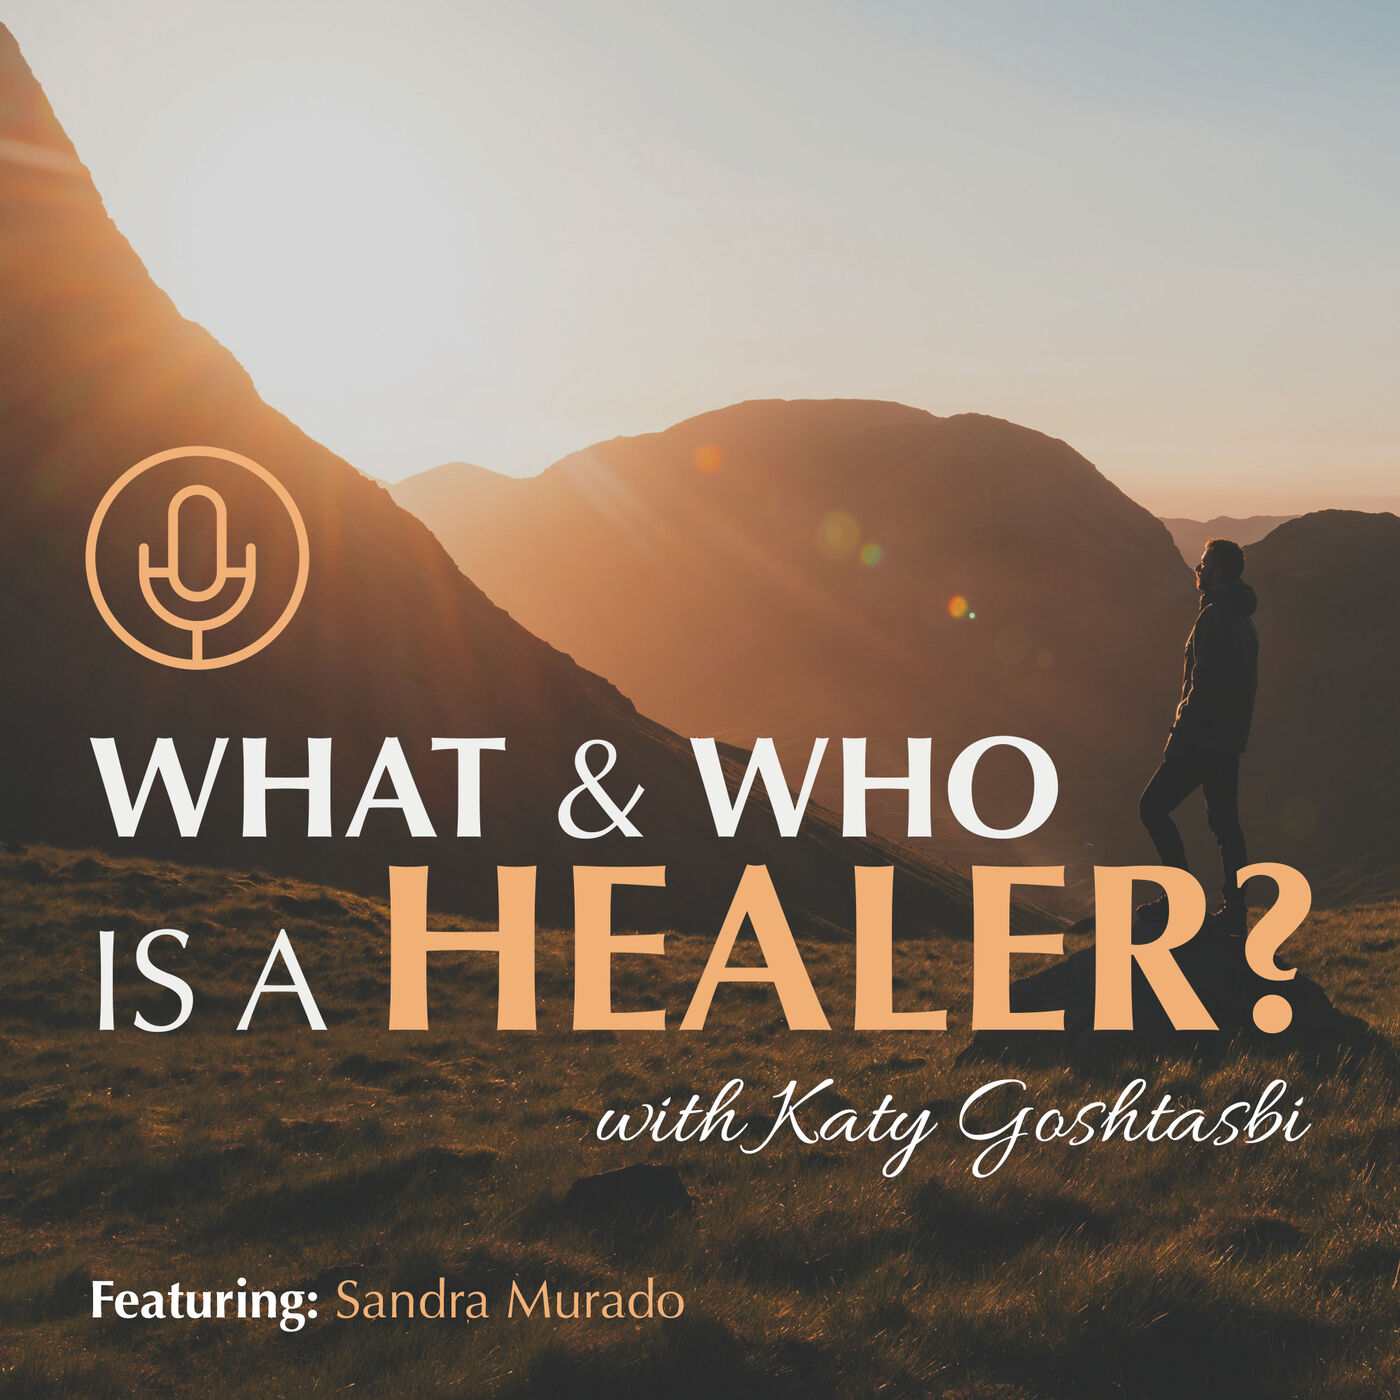 What & Who Is a Healer? Interview with Sandra-Murado